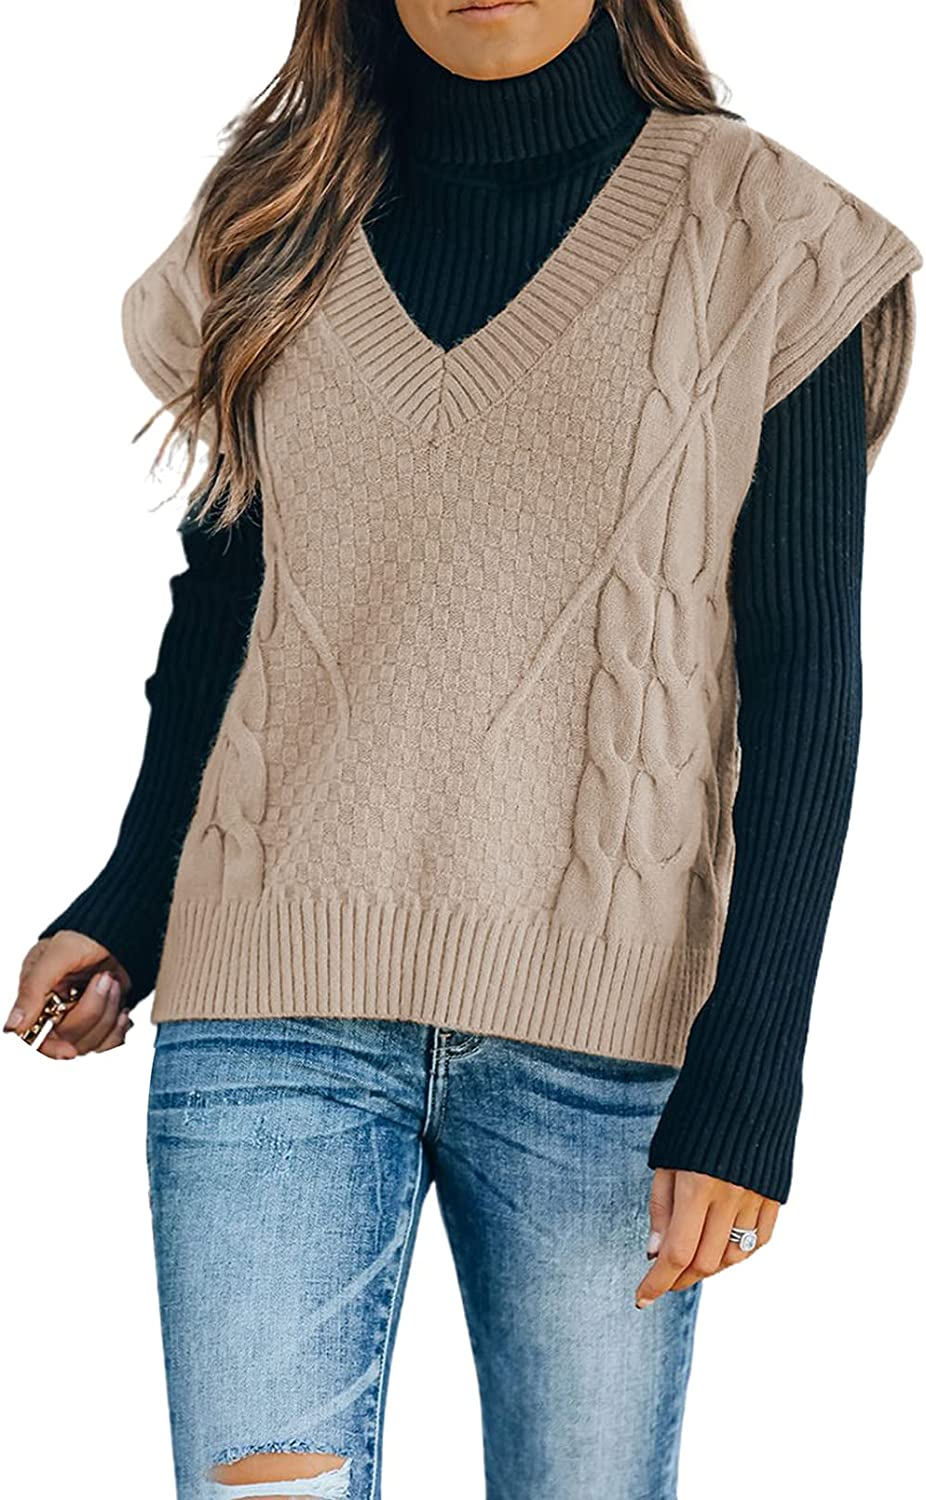 Actloe Womens V Neck Sleeveless Color Block Vintage Sweater Vest Pullover Tops